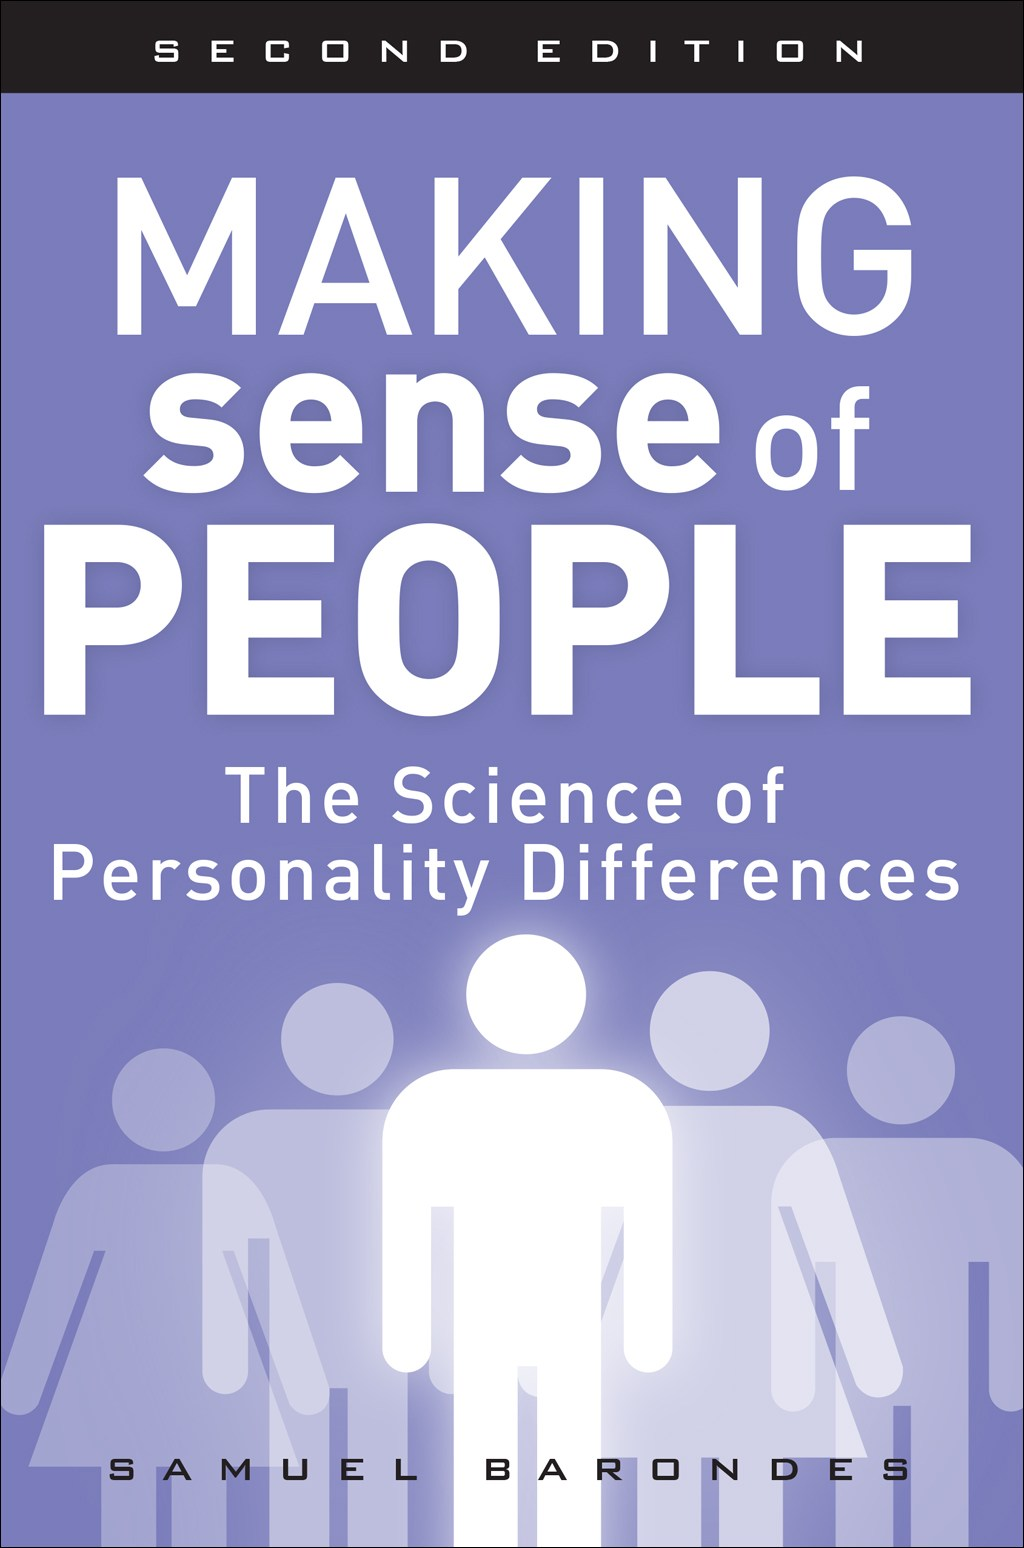 Making Sense of People: The Science of Personality Differences, 2nd Edition